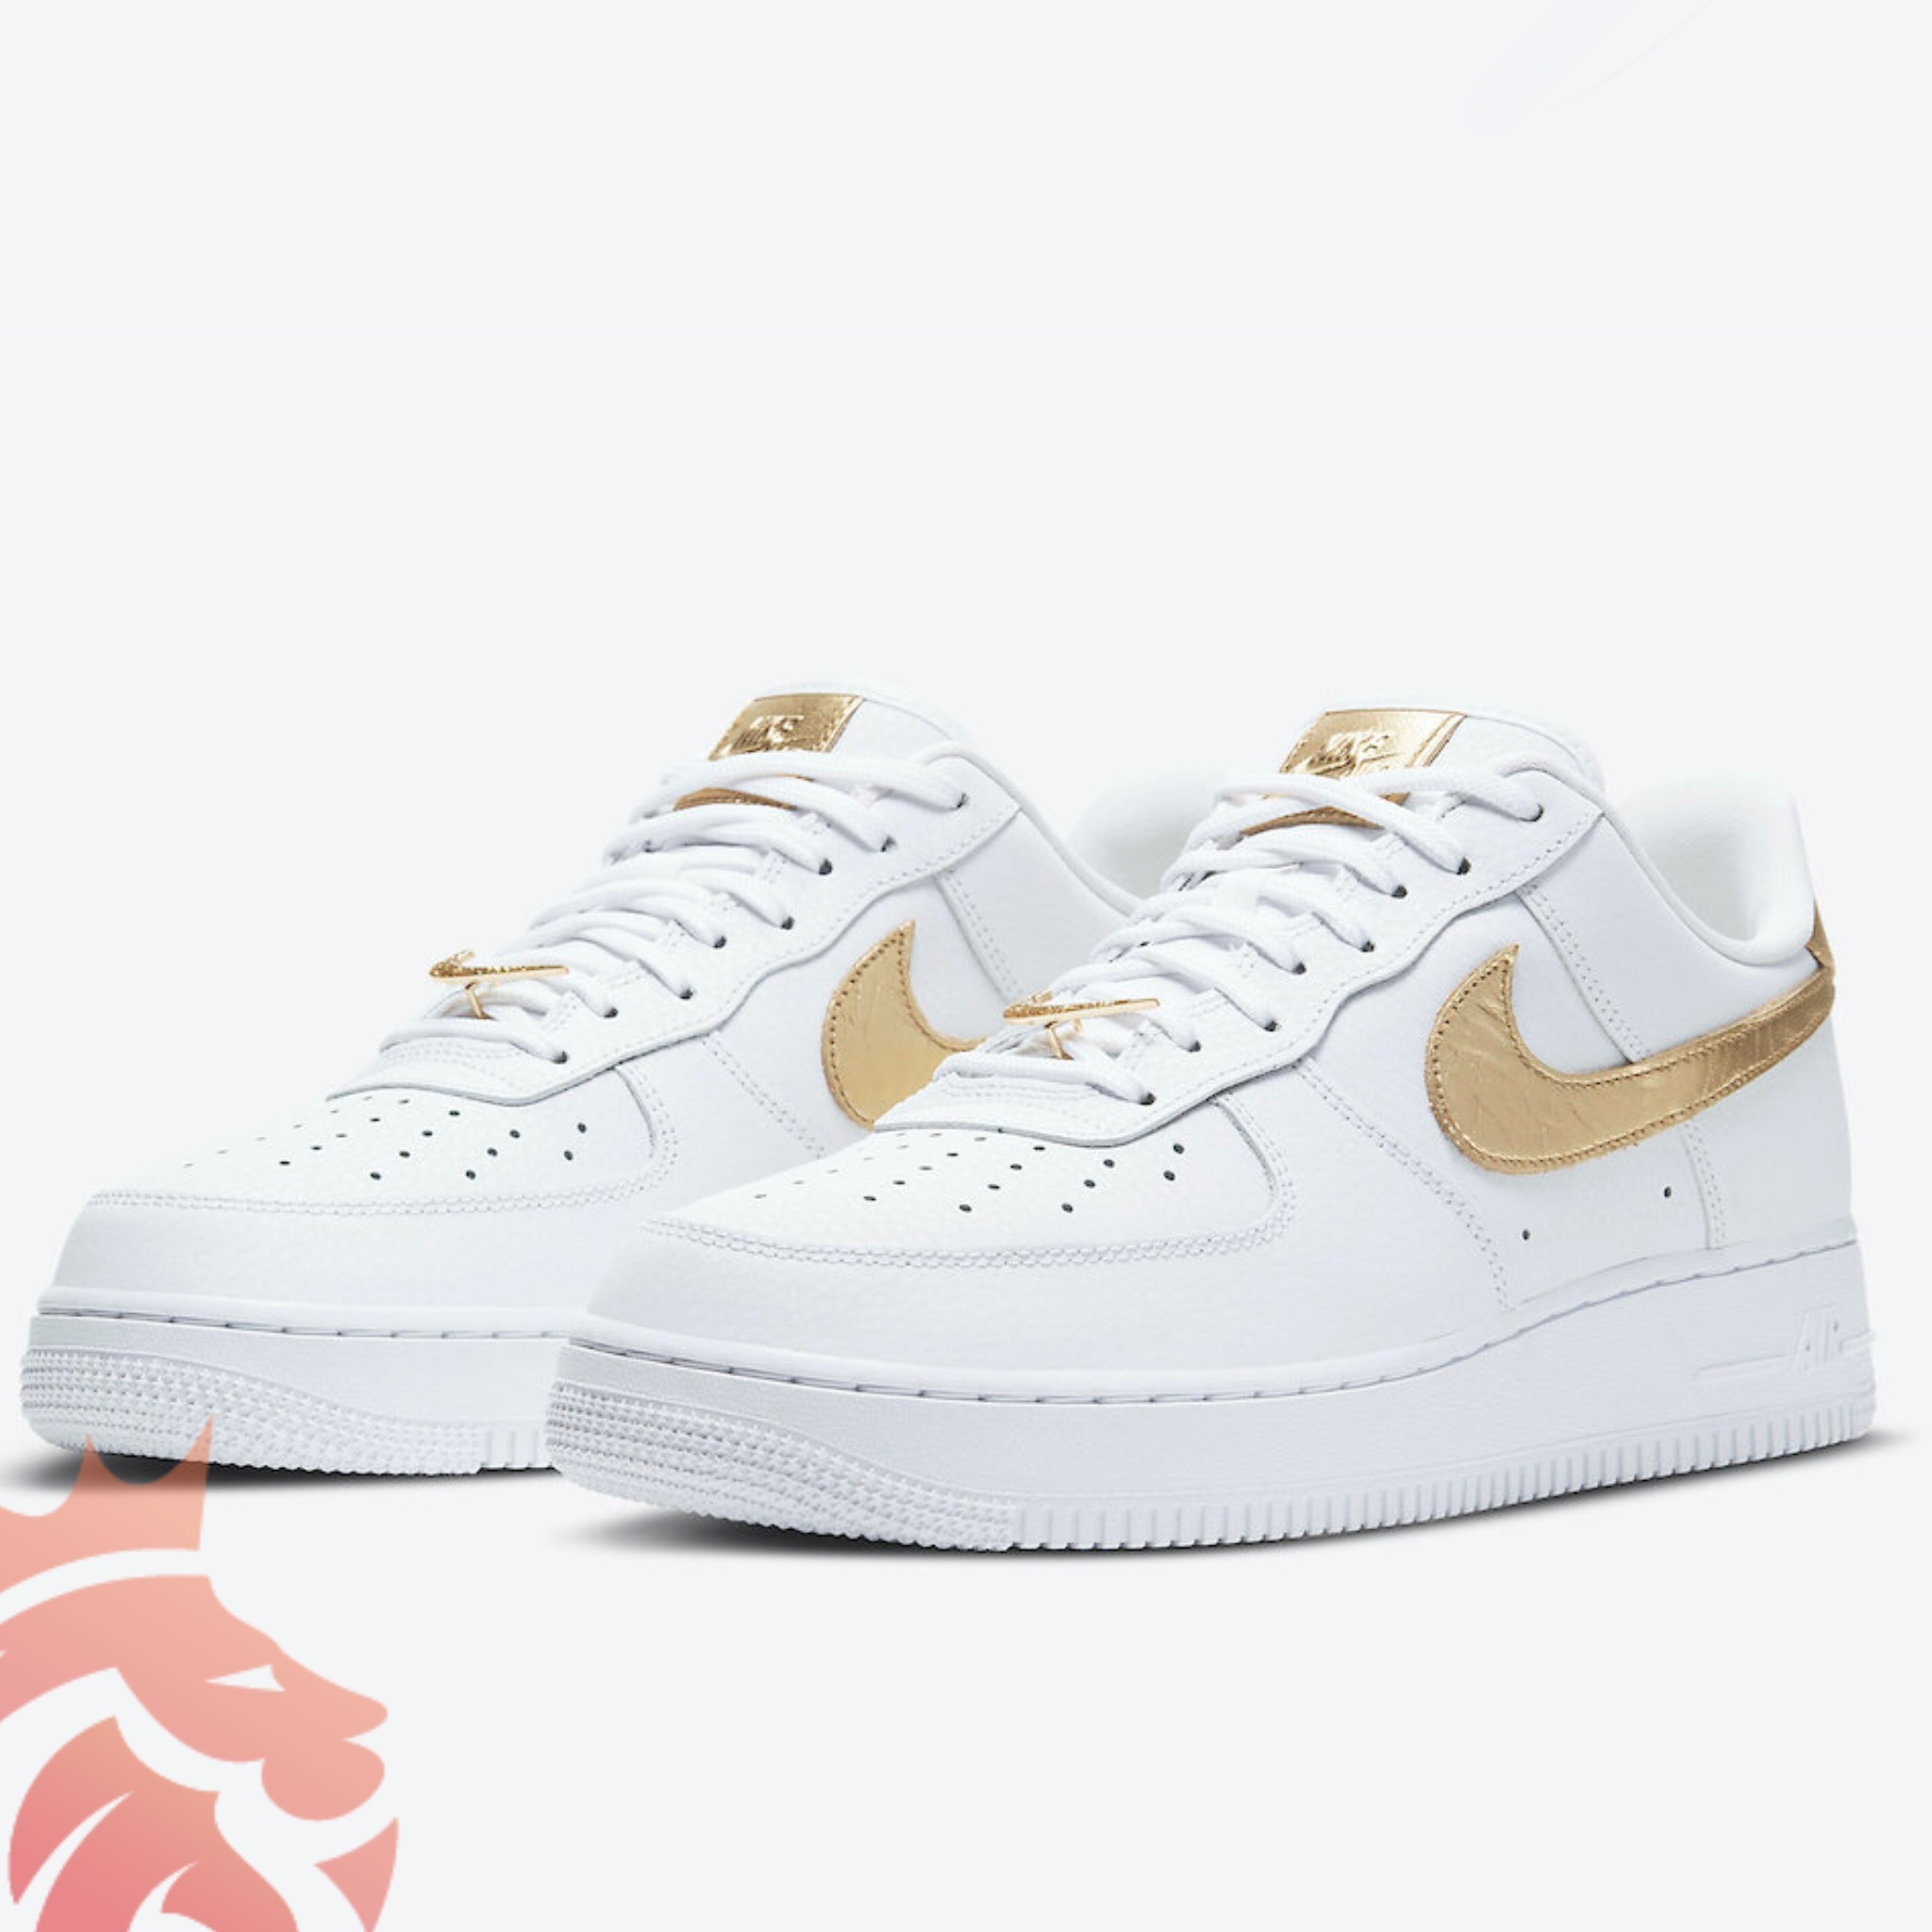 Nike Air Force 1 Low DC2181-100 White/Metallic Gold